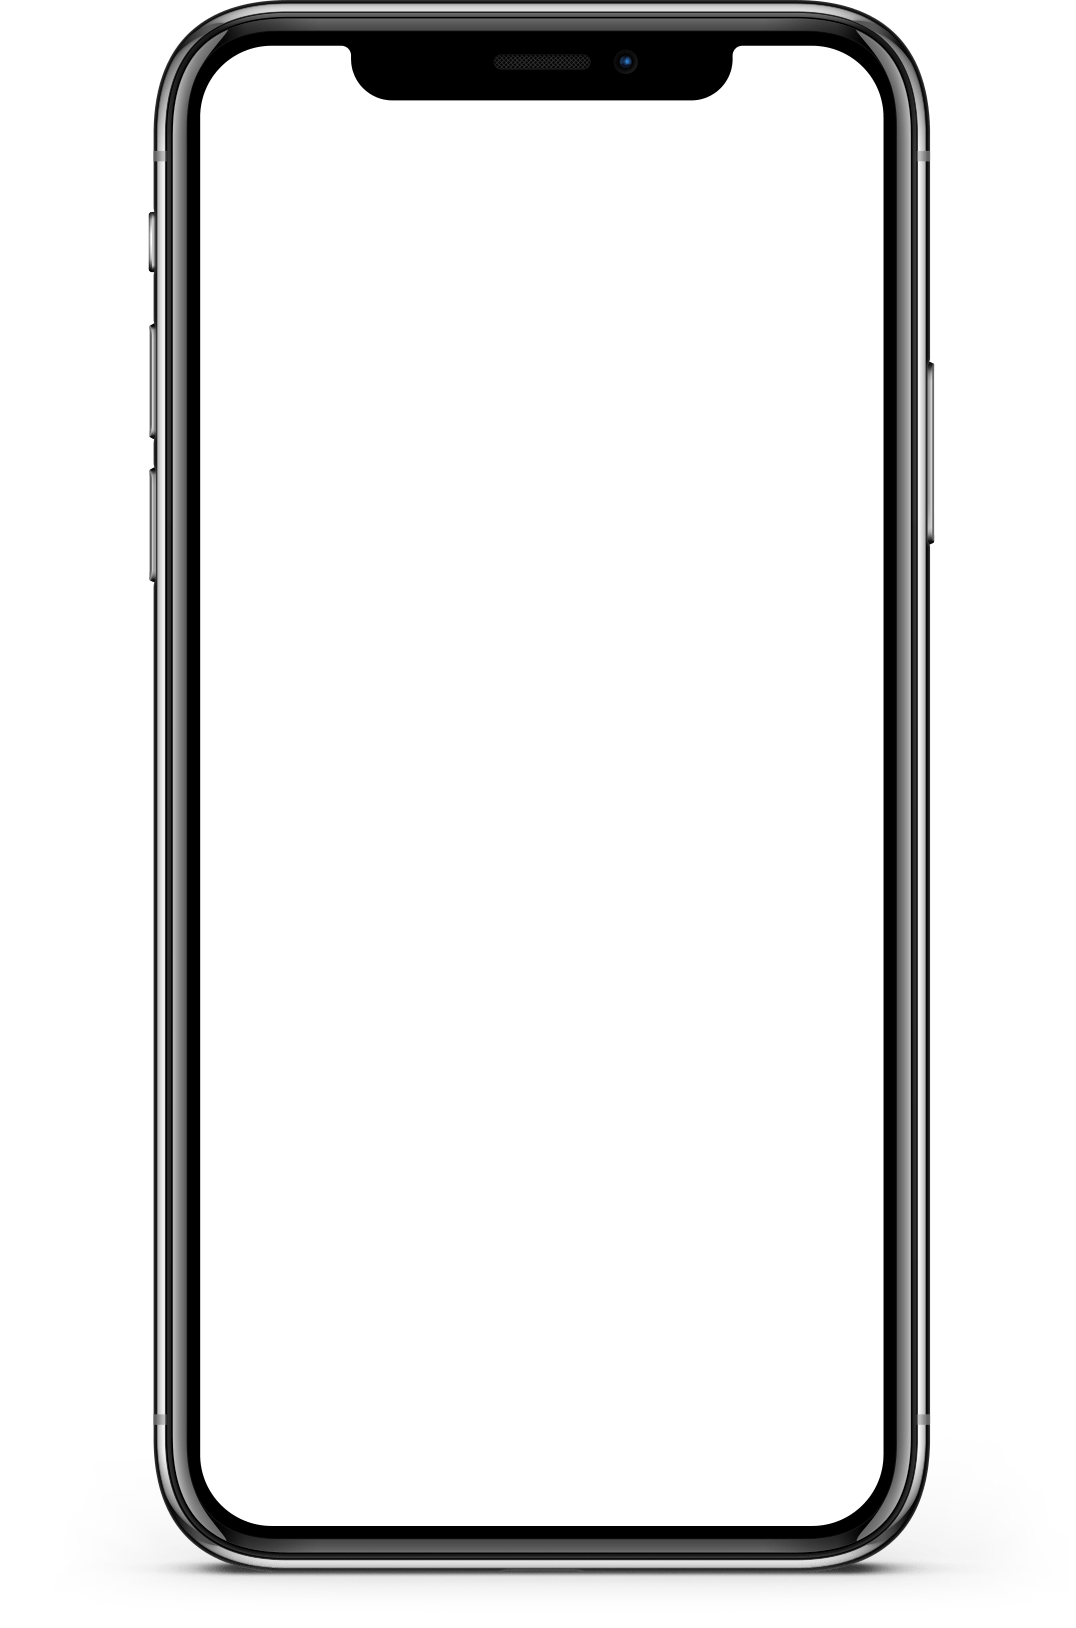 Iphone X Png & Free Iphone X.png Transparent Images #27963 ...